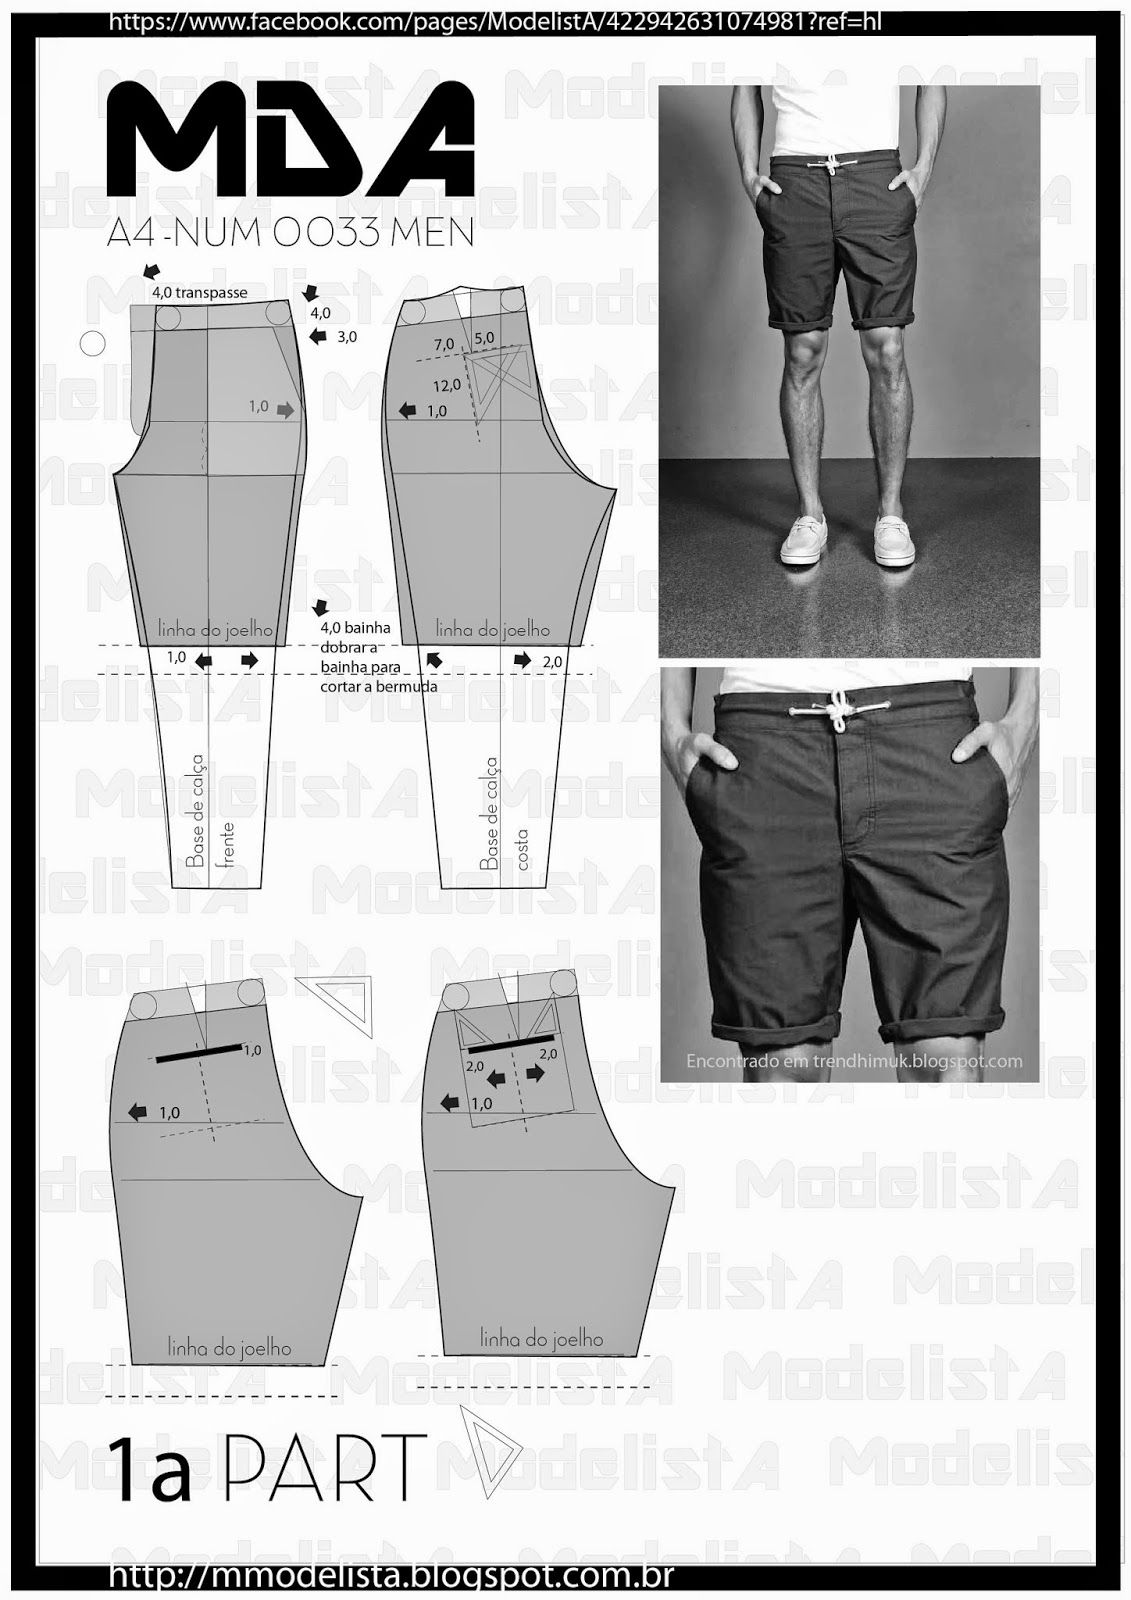 ModelistA: A4 - NUM 0033 MEN SHORTS Part 1 (Maybe I can make DH some awesome shorts that won't fall apart as readily as those store-bought ones do.)